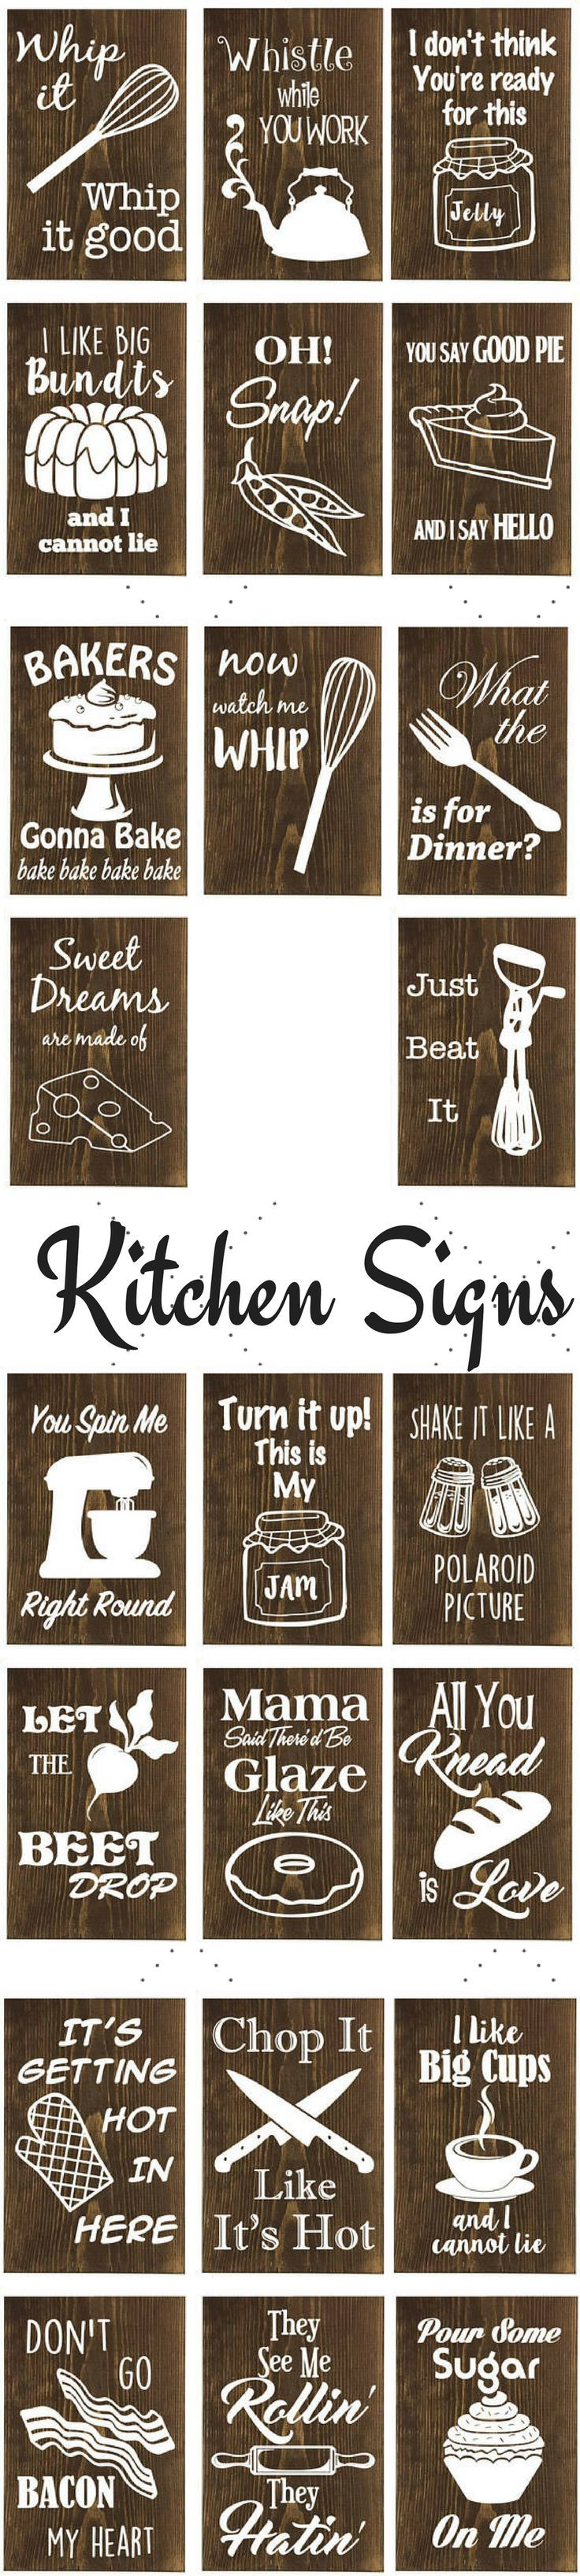 Funny Wooden Kitchen Sign Wall Decor Kitchen Humor Housewarming Kitchen Decor Home Decor Conversation Piece Funny Signs Humo Diy Signs Kitchen Signs Crafts